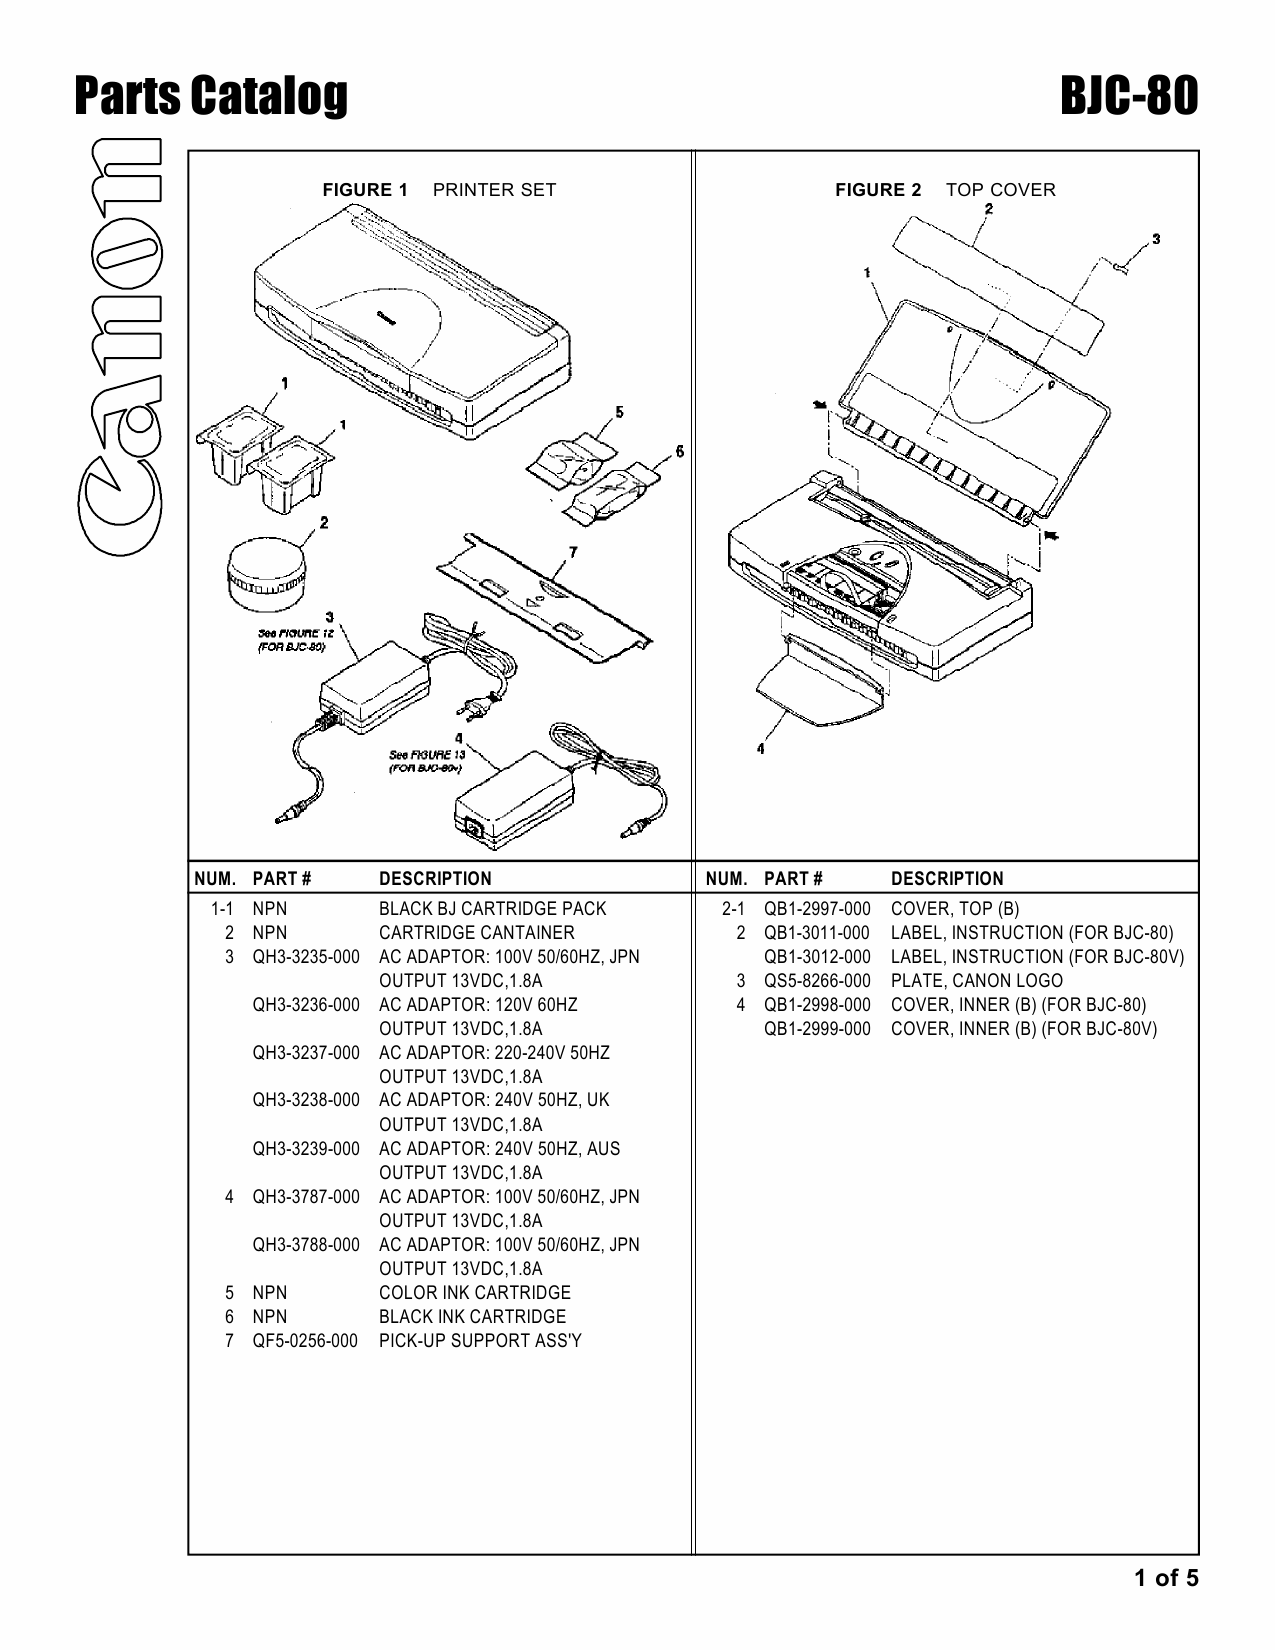 Canon BubbleJet BJC-80 Parts Catalog Manual-2